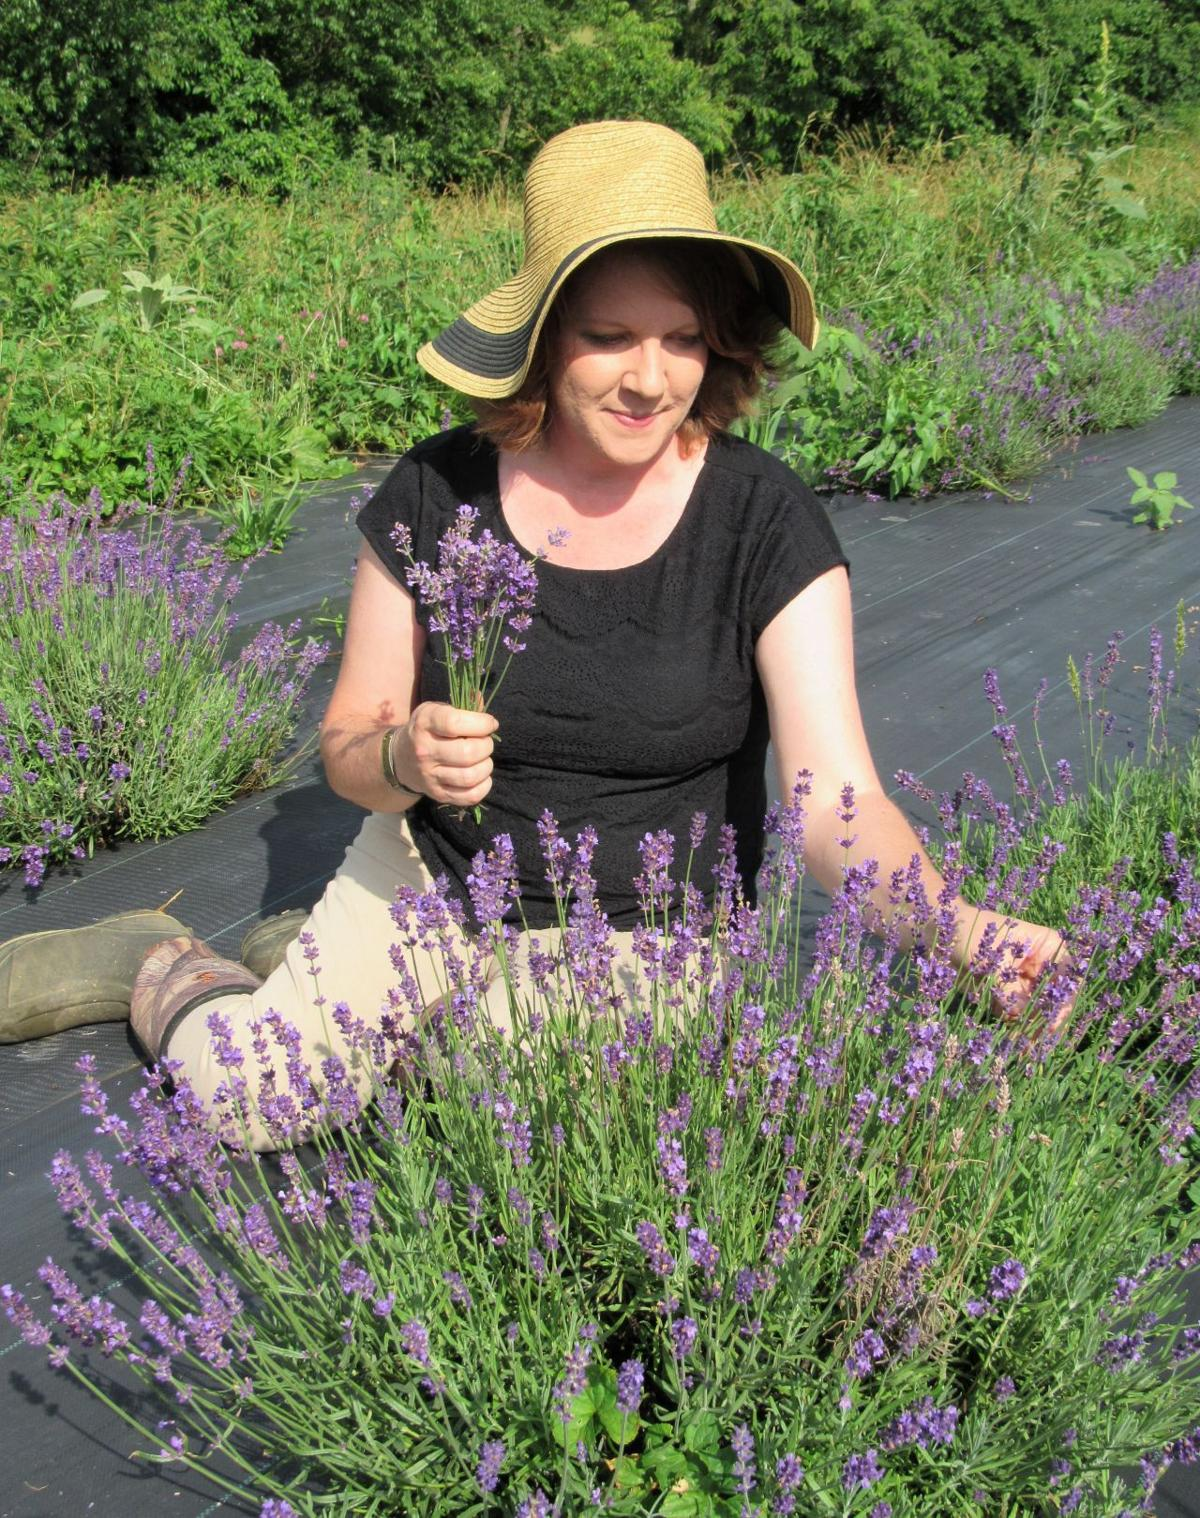 Local lavender farm offers classes, soaps and more | News